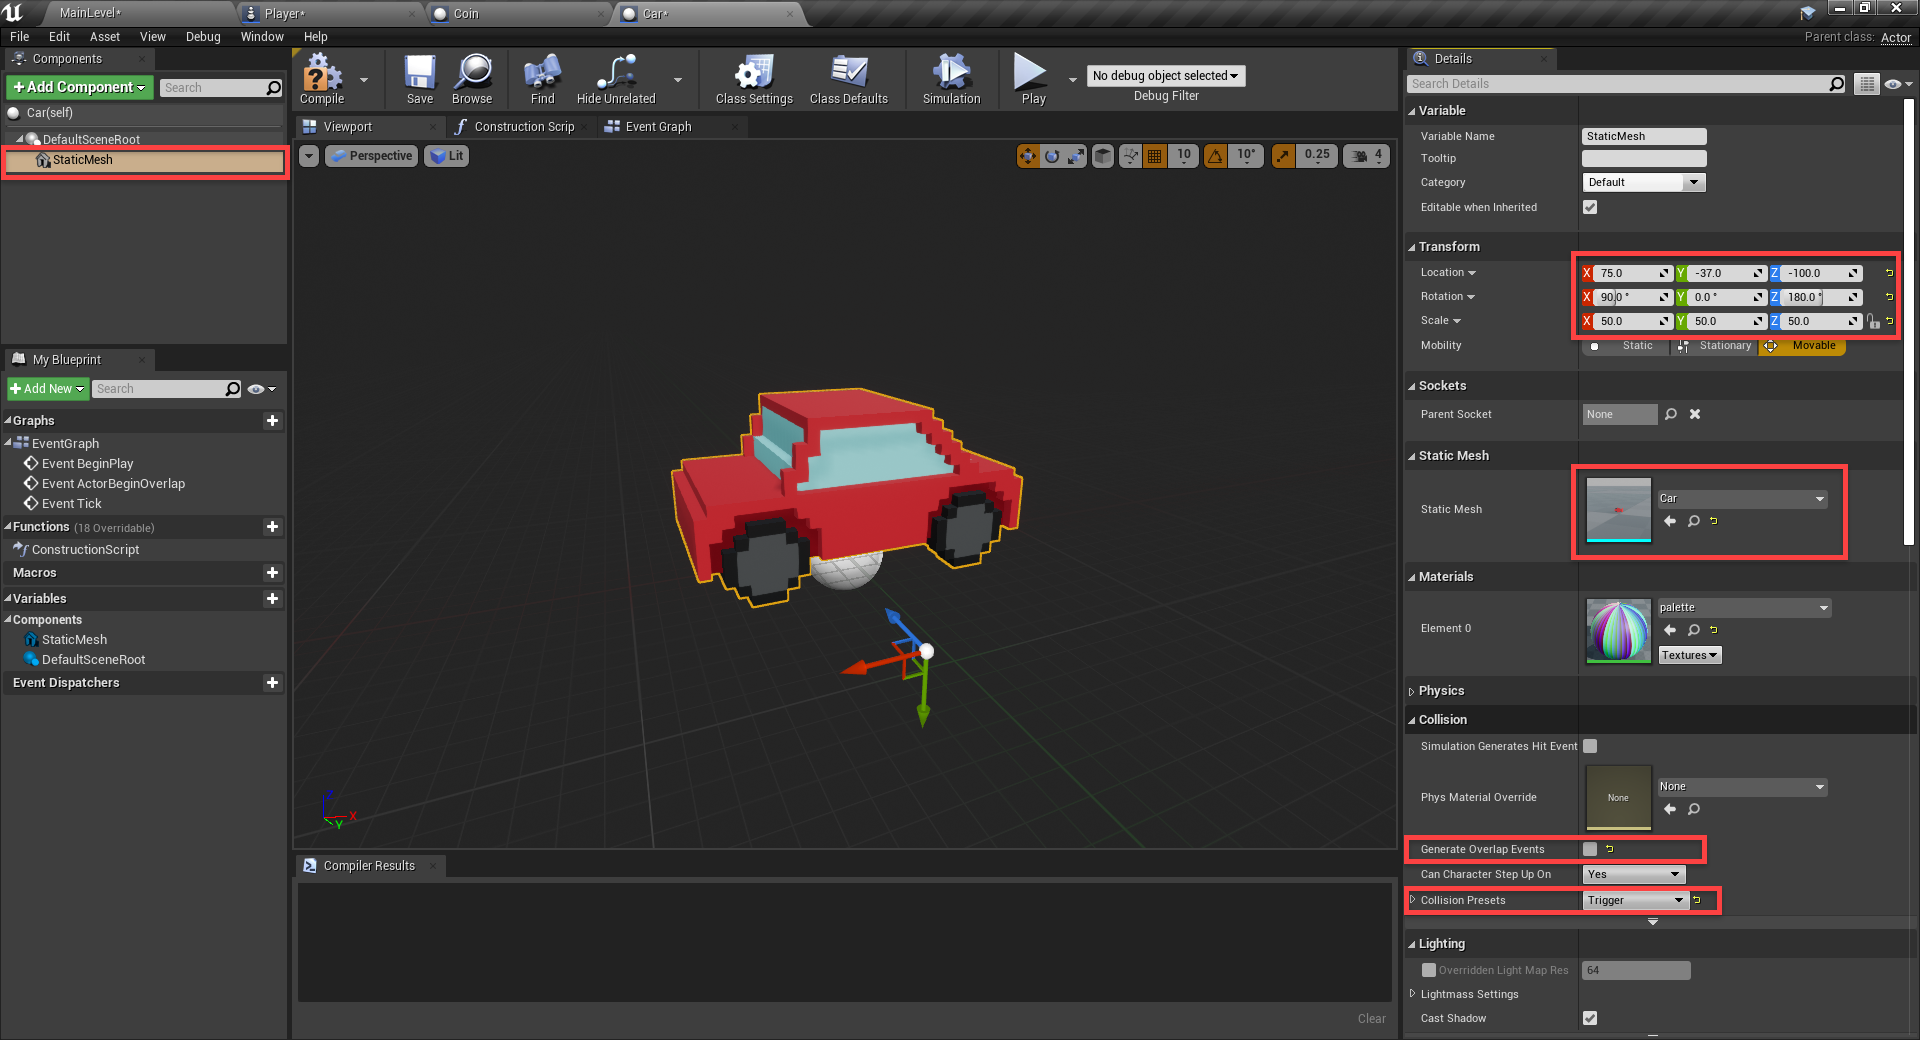 Unreal Engine with car object model for new blueprint